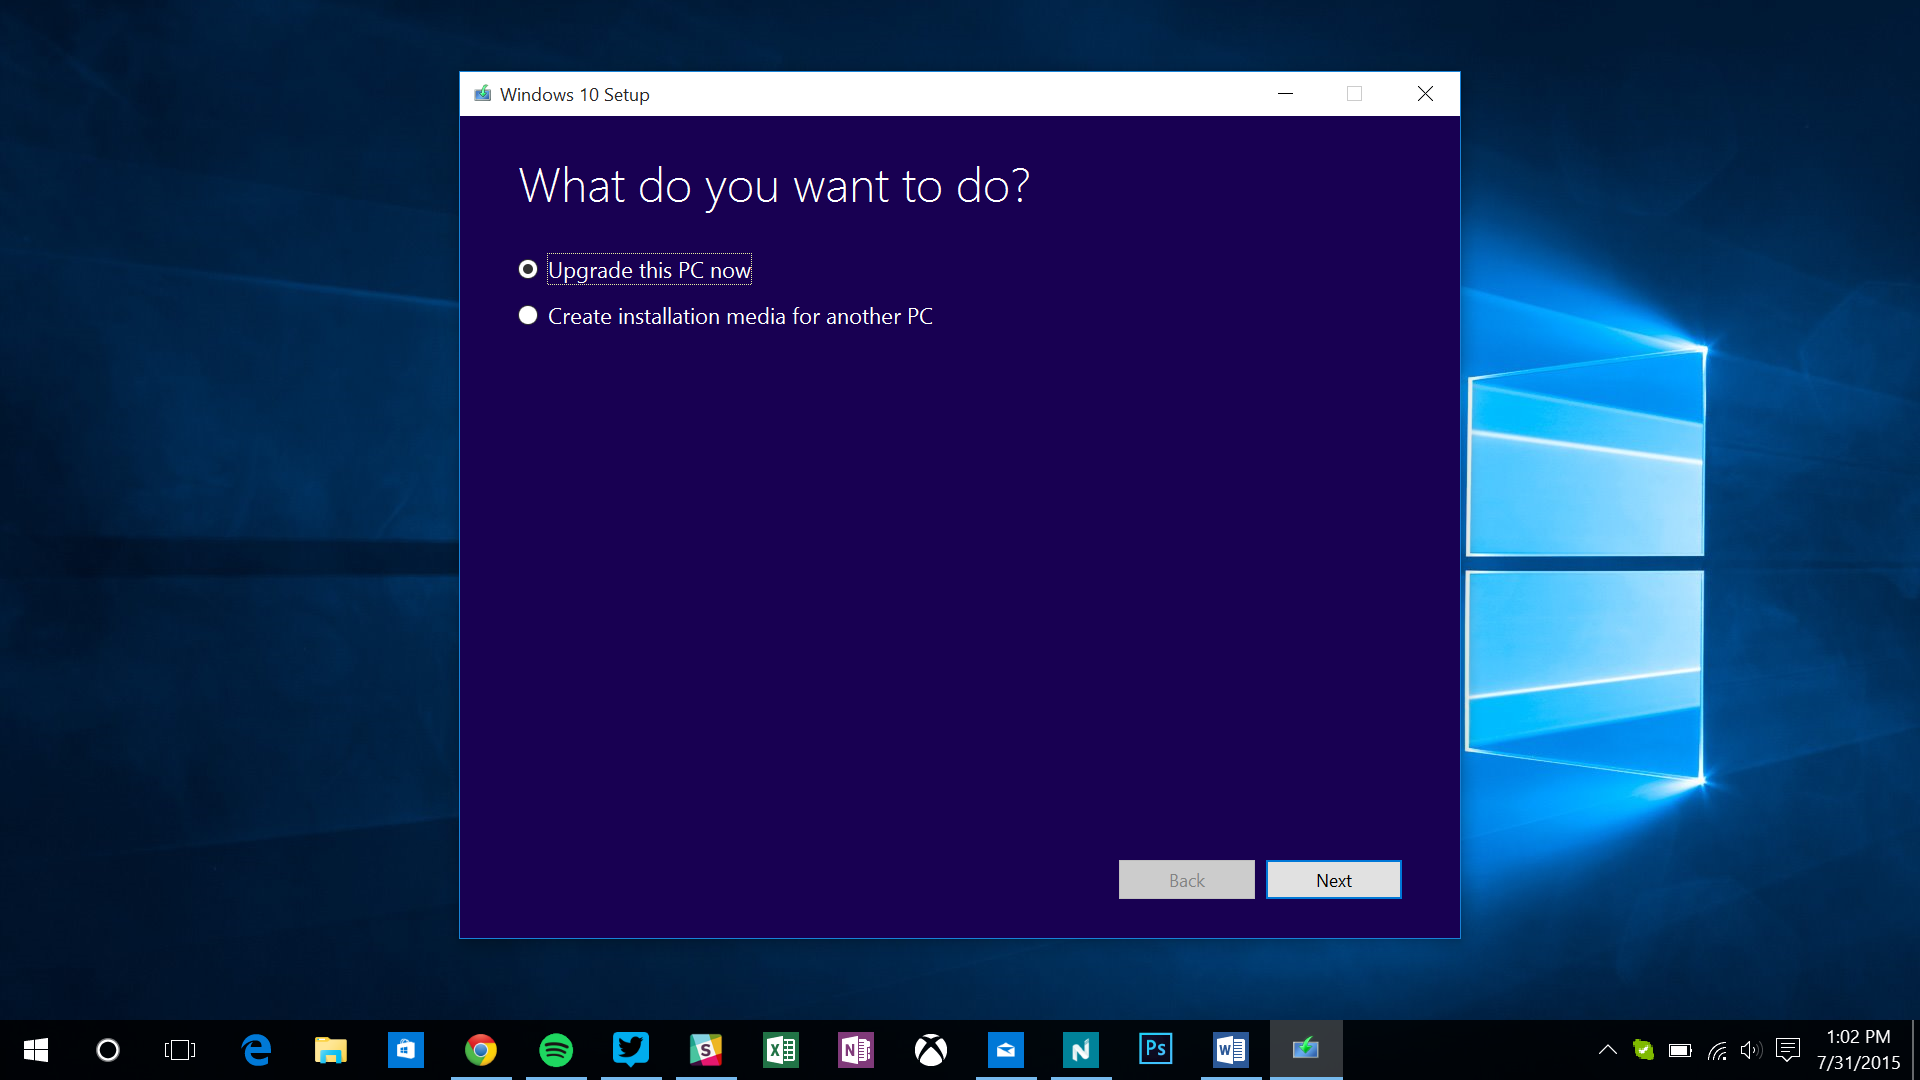 How to clean install Windows 10 - The Verge